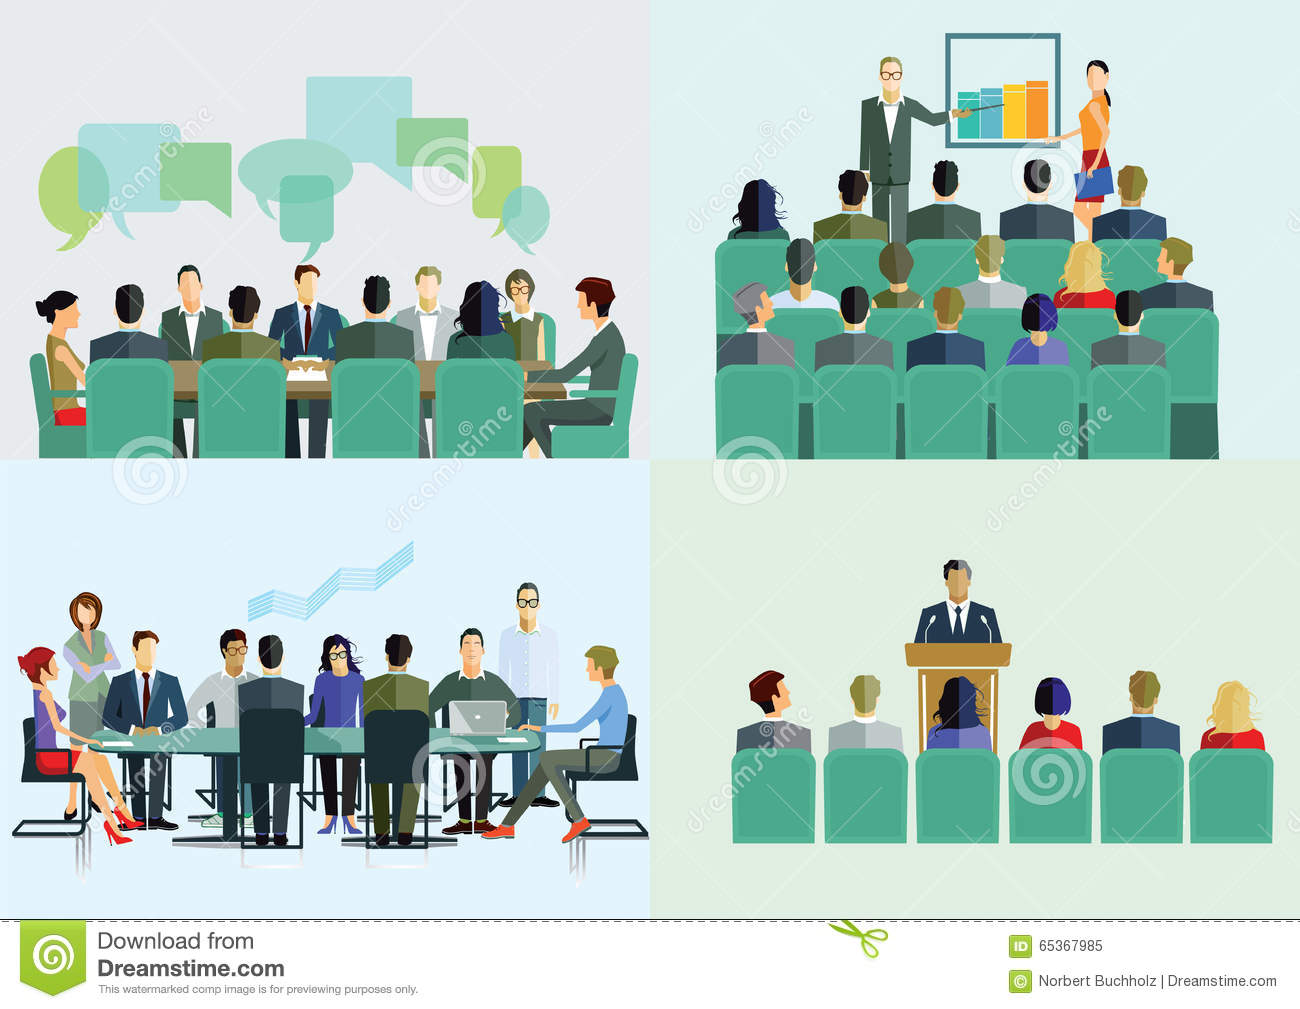 Lecture Course And Seminar Stock Vector Illustration Of Businesswomen Summit 65367985